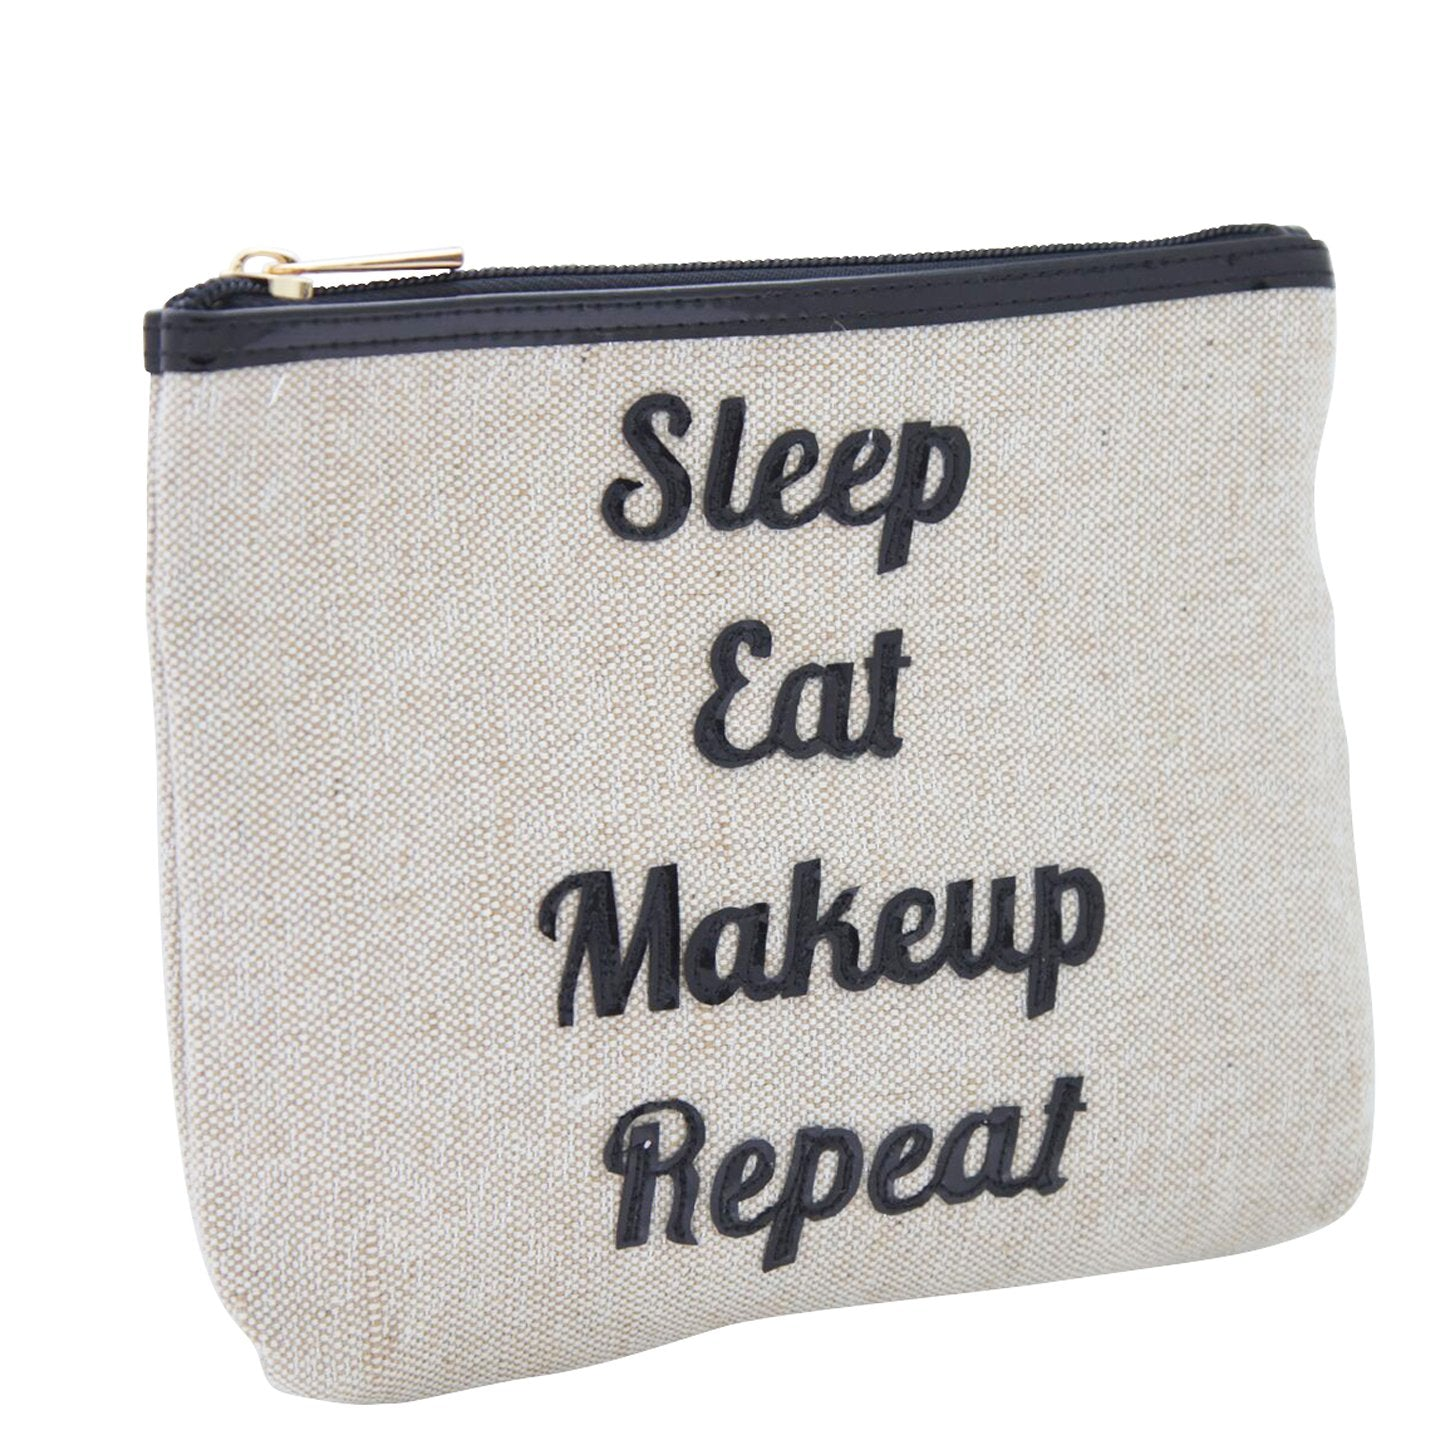 Alice in canvas with black sleep eat makeup repeat